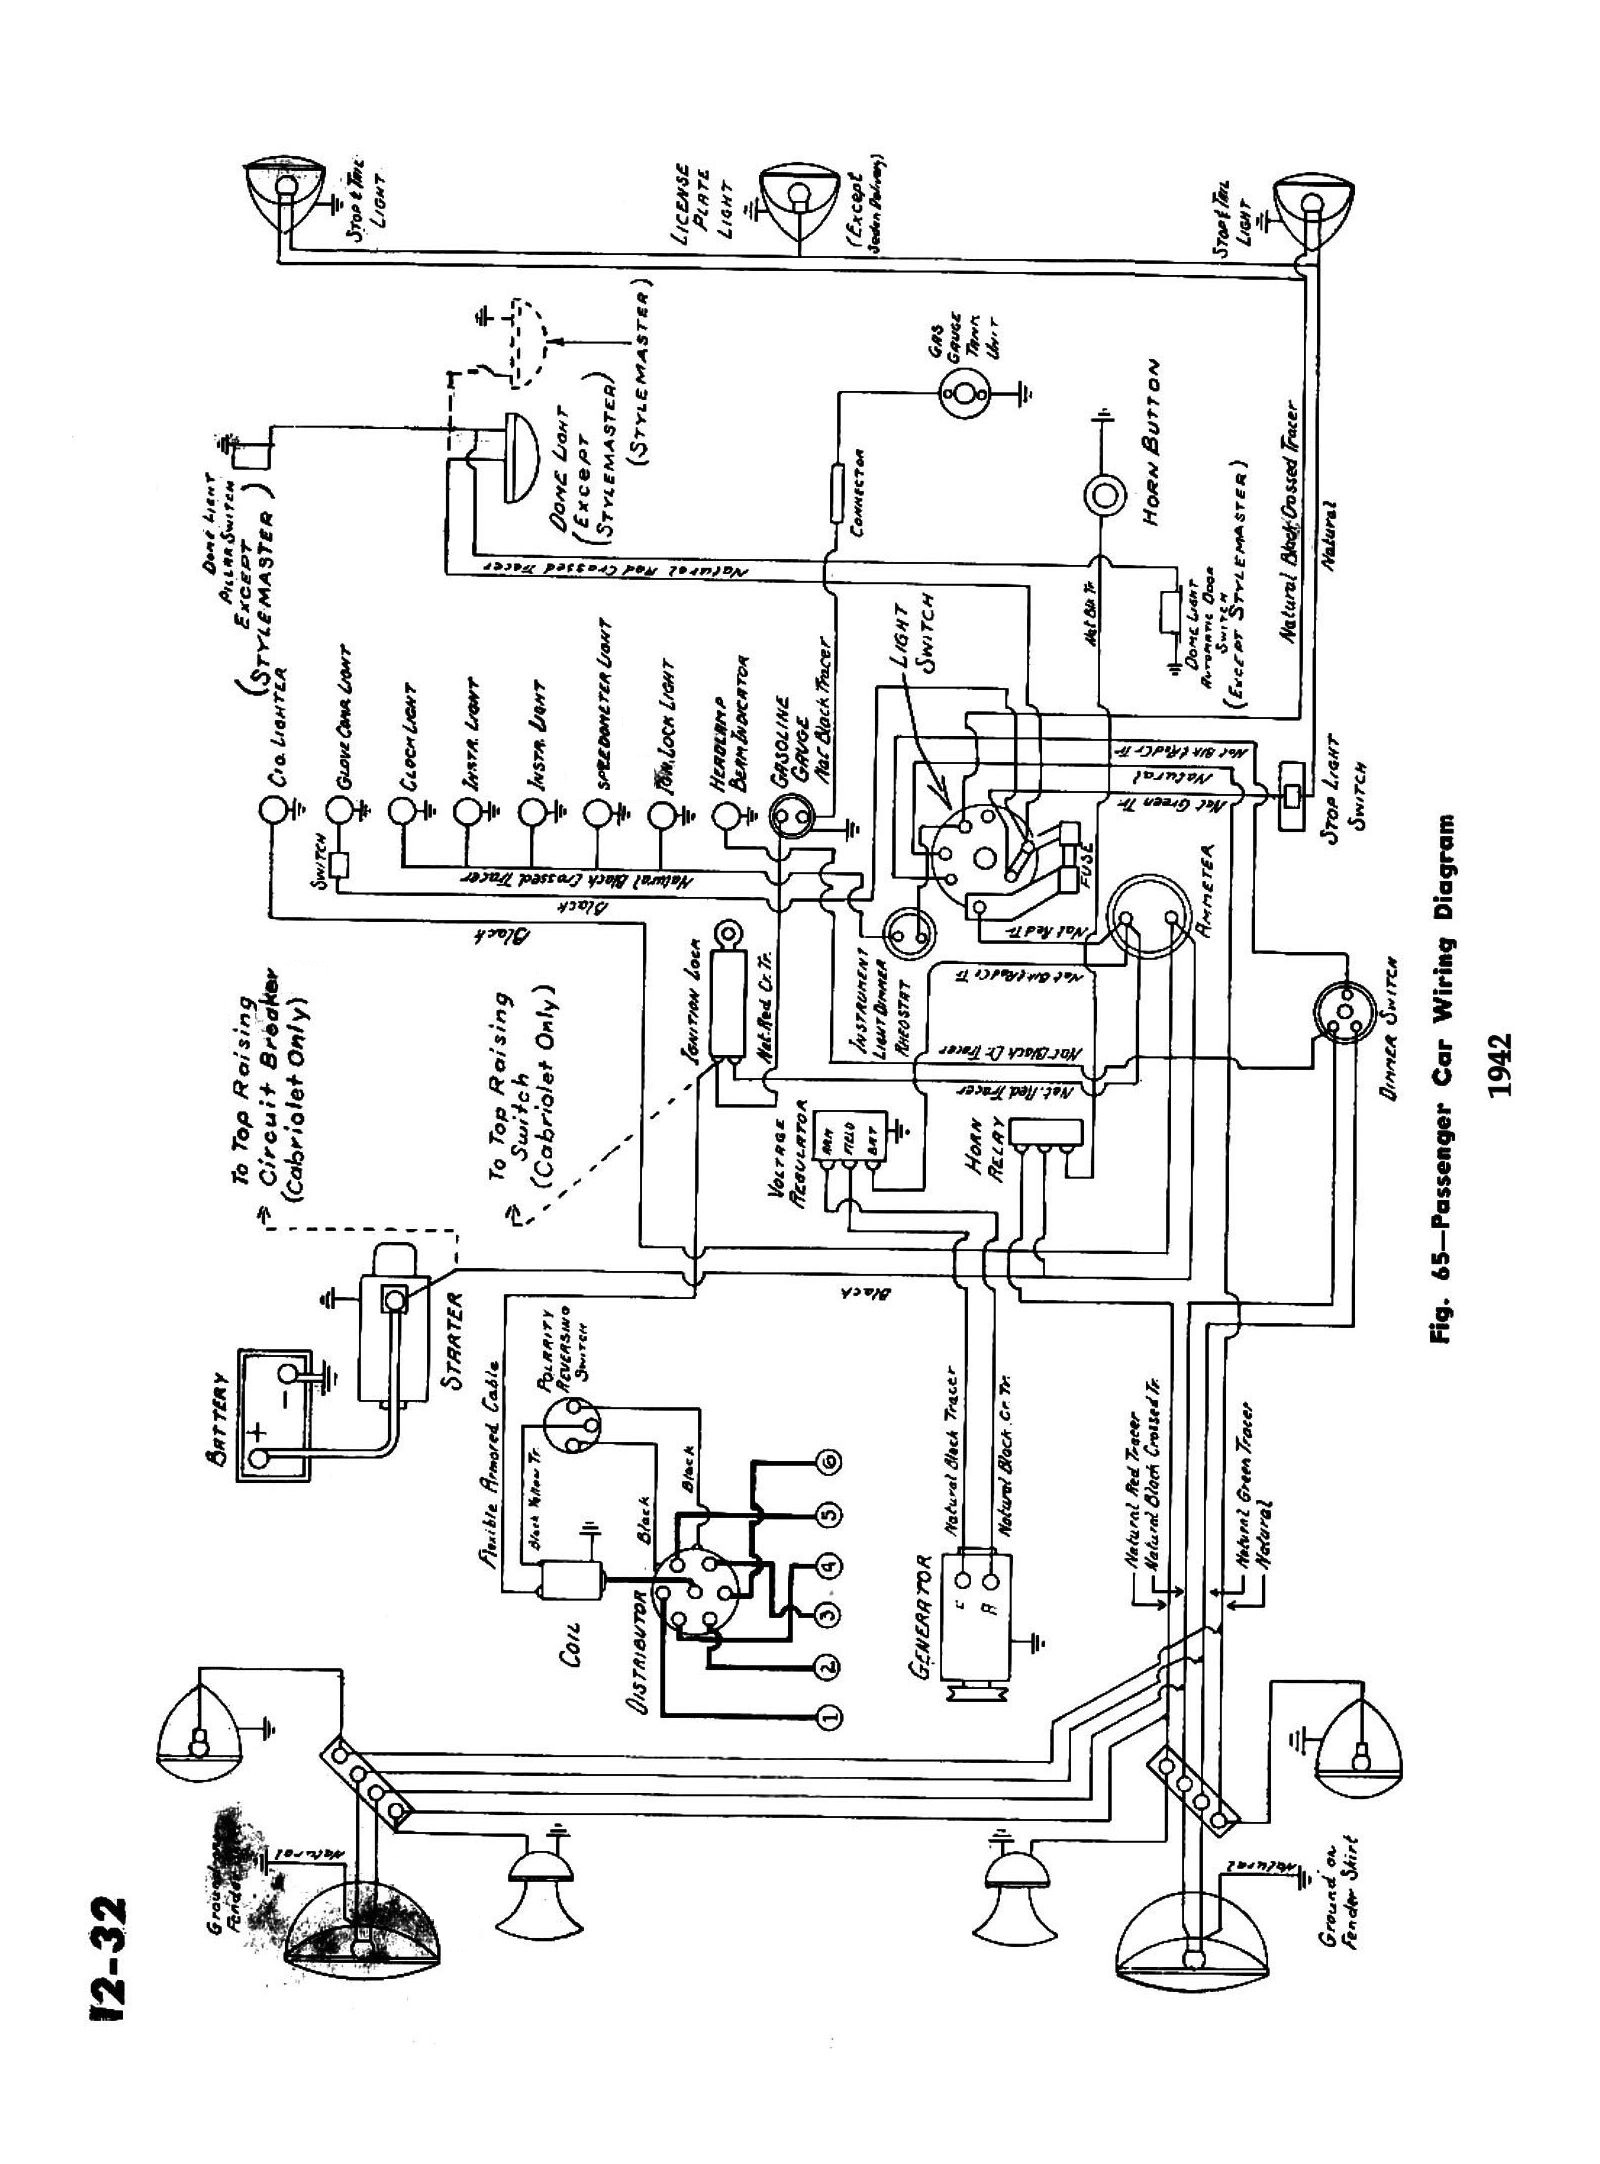 1957 Chevy Wiring Harness Diagram For Horn Libraries 57 Diagrams1942 Passenger Car